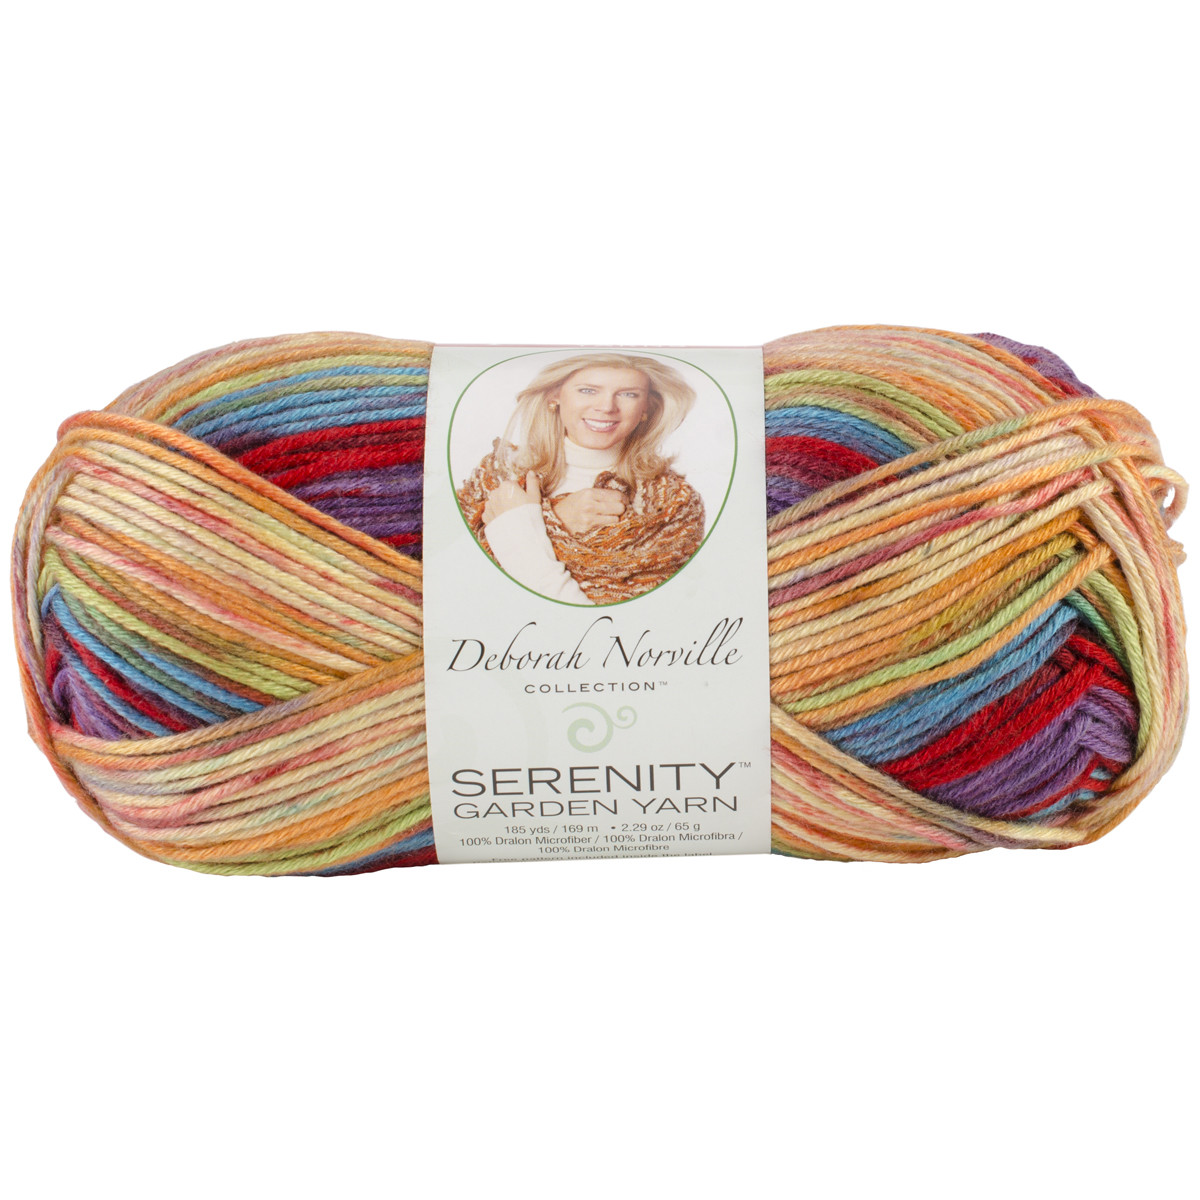 Deborah norville Yarn Best Of Deborah norville Collection Serenity Garden Yarn Gems Of Amazing 50 Pics Deborah norville Yarn